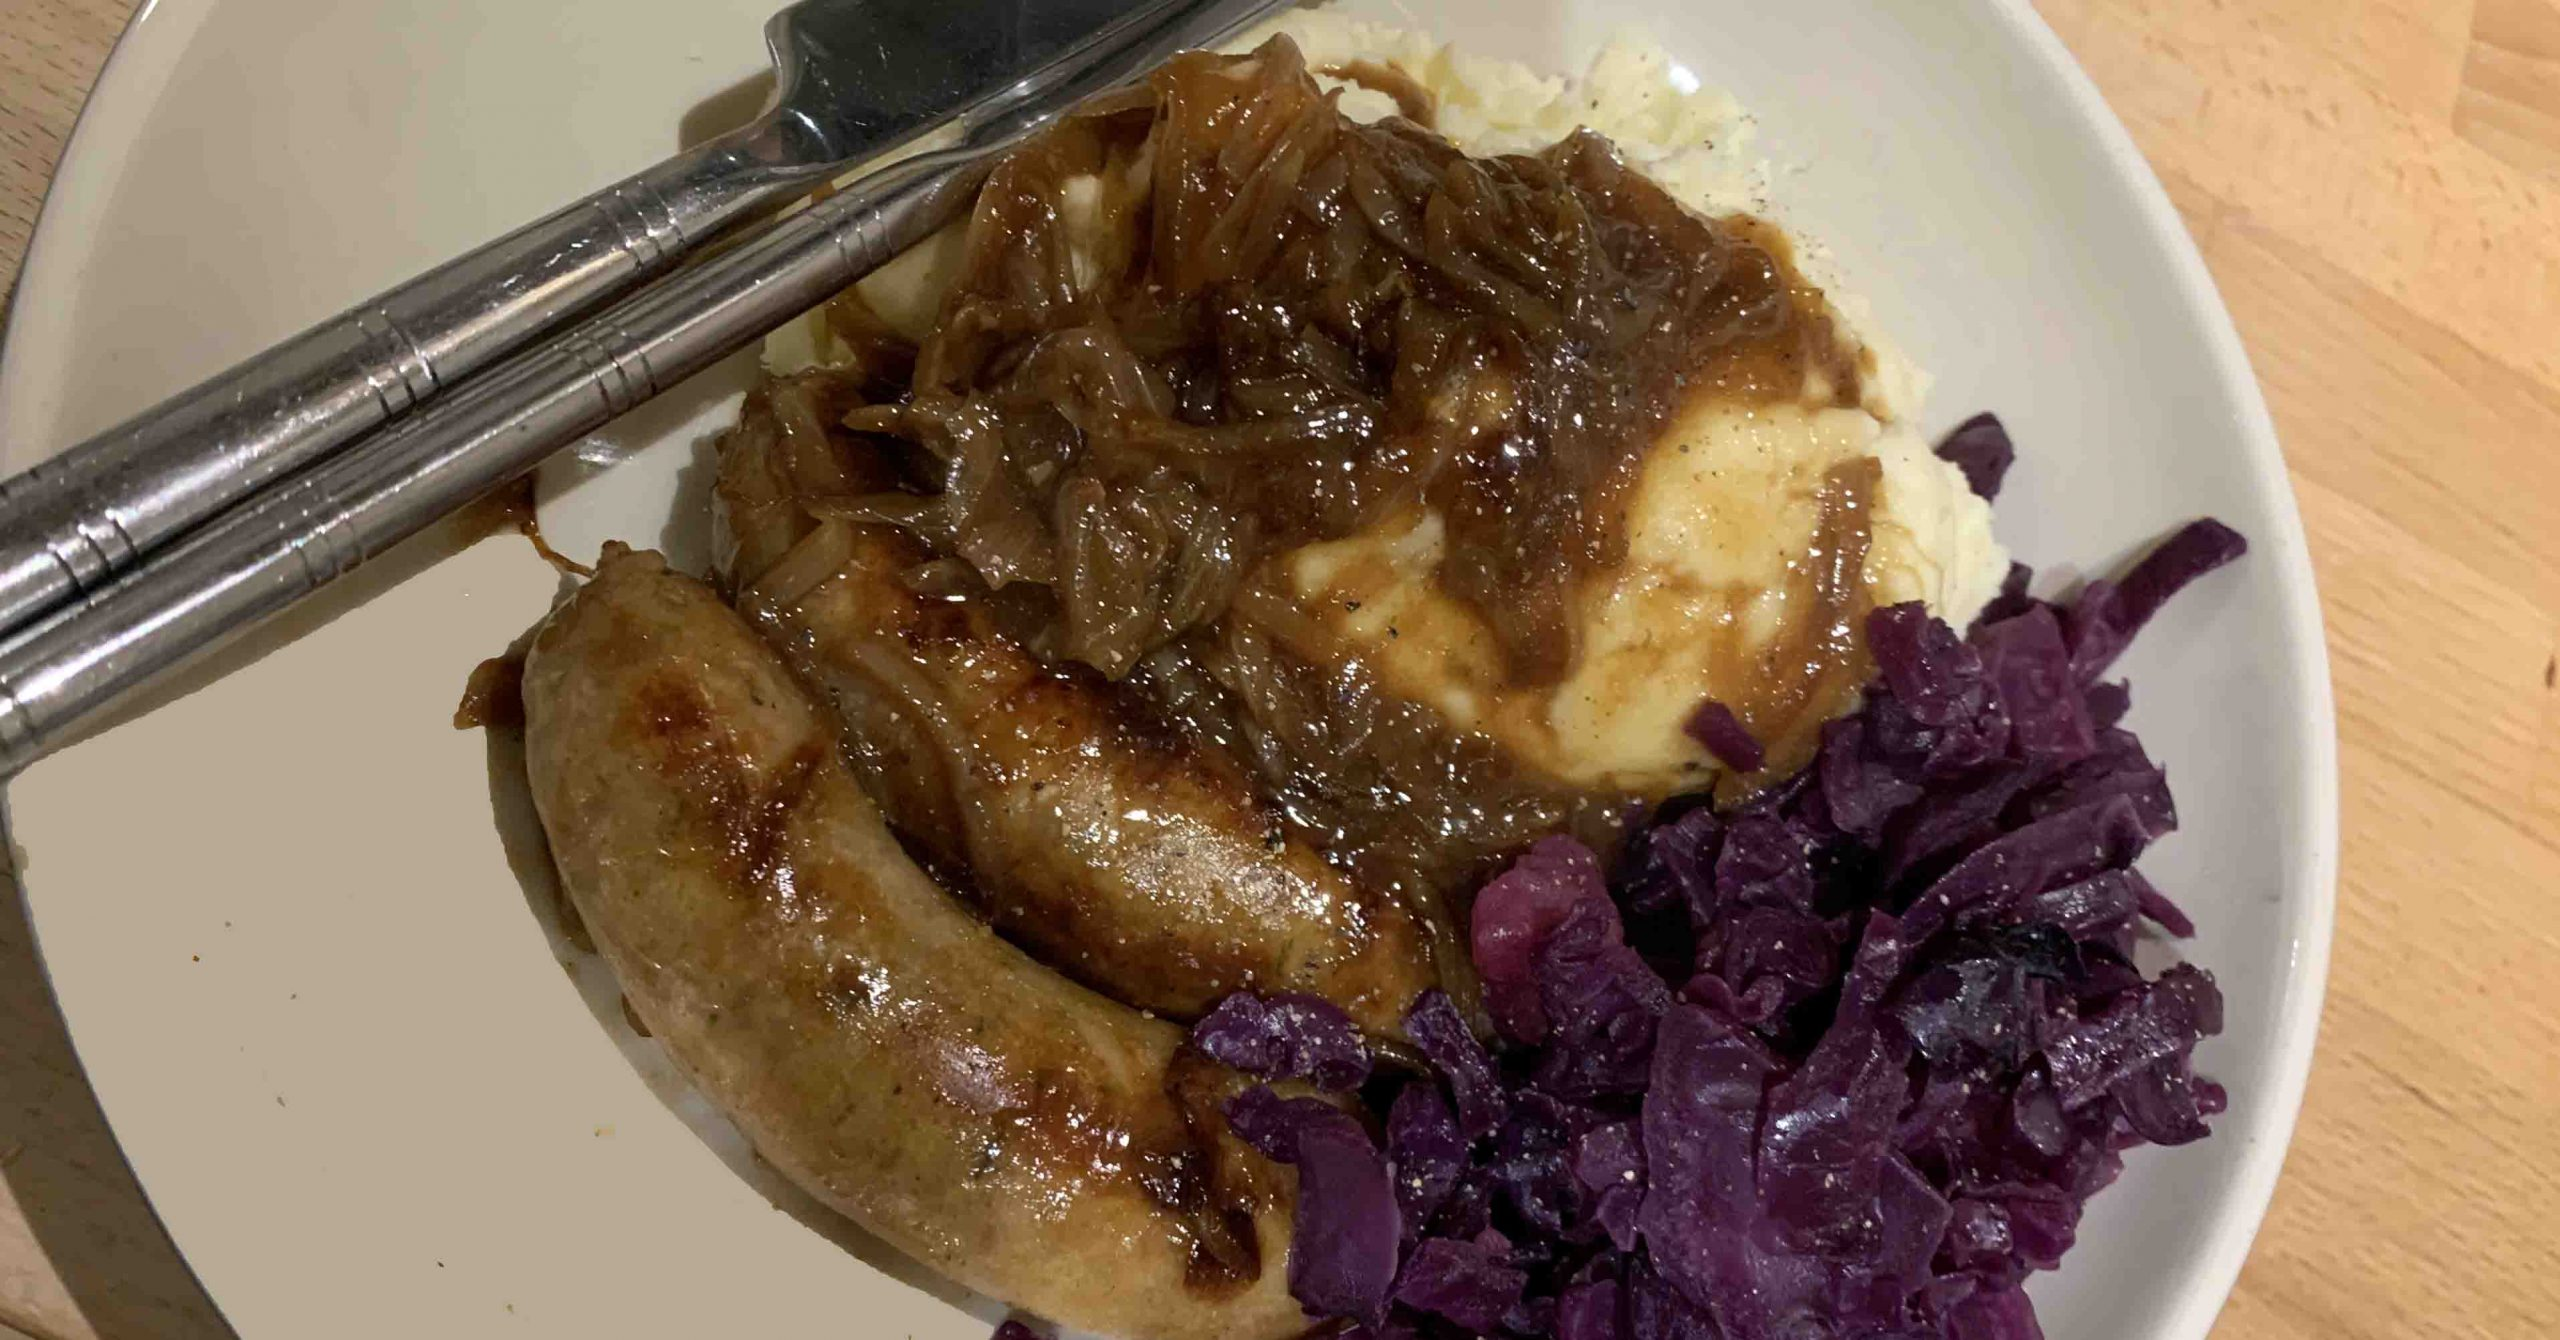 Sausages, onion gravy, mashed potato and stewed cabbage